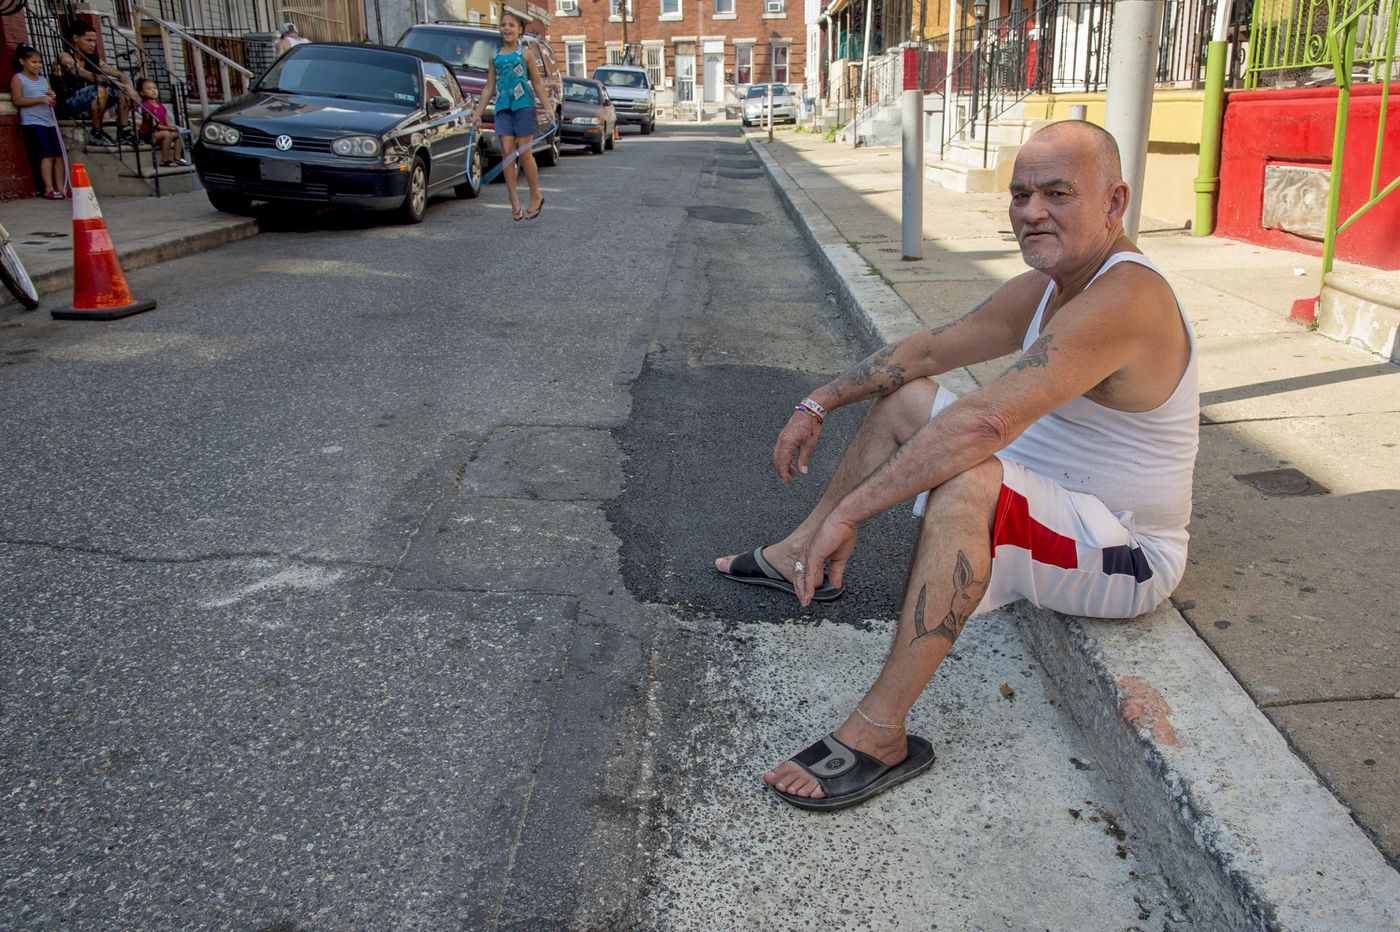 It took four years, $536, and a viral video for these North Philly neighbors to get potholes filled